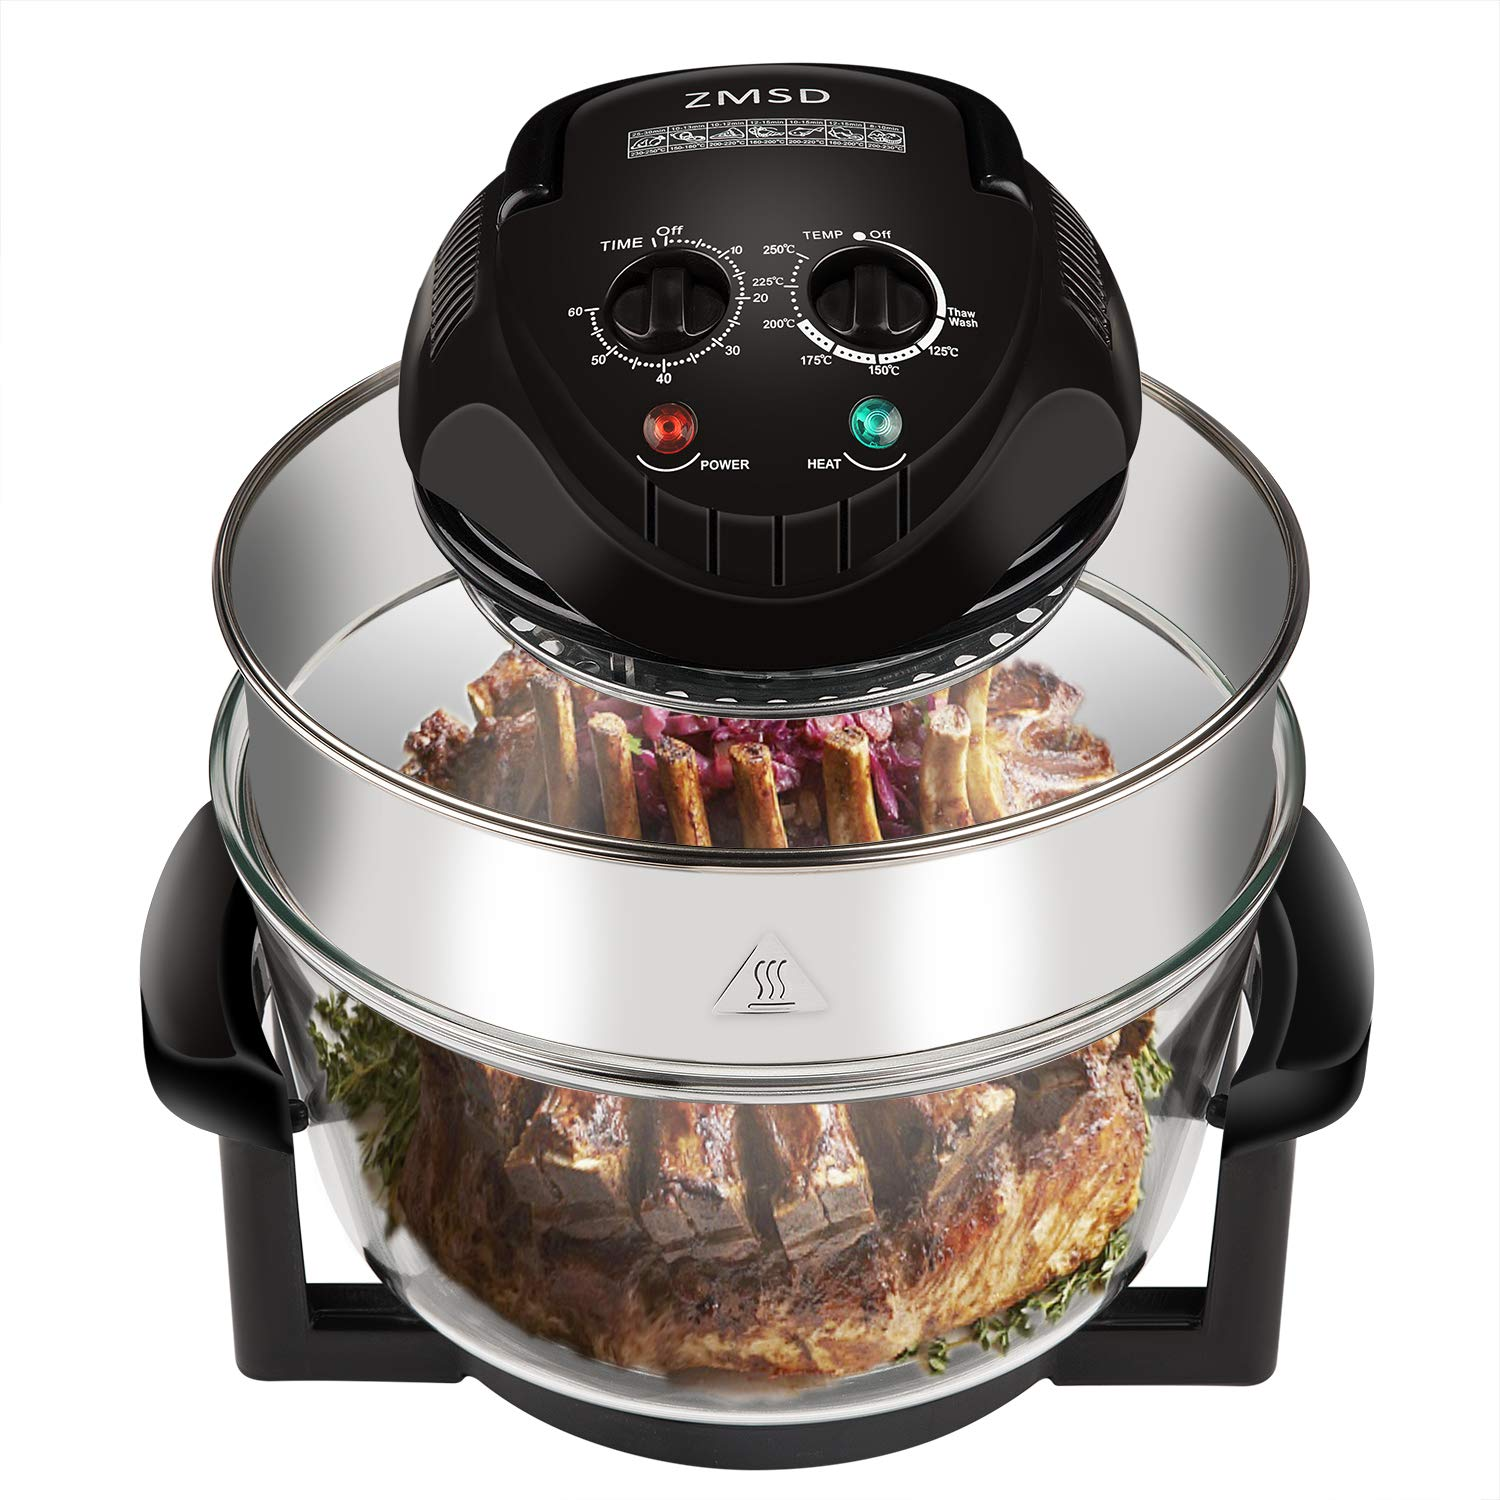 ZMSD Oil-less Air Fryer,Infrared Convection Halogen Oven Countertop,Bake, Grill, Steam Broil, Roast & Air-Fry, Includes Glass Bowl,Tong,Broil Rack,Pan and Toasting Rack,18 Quart 1400W,120V